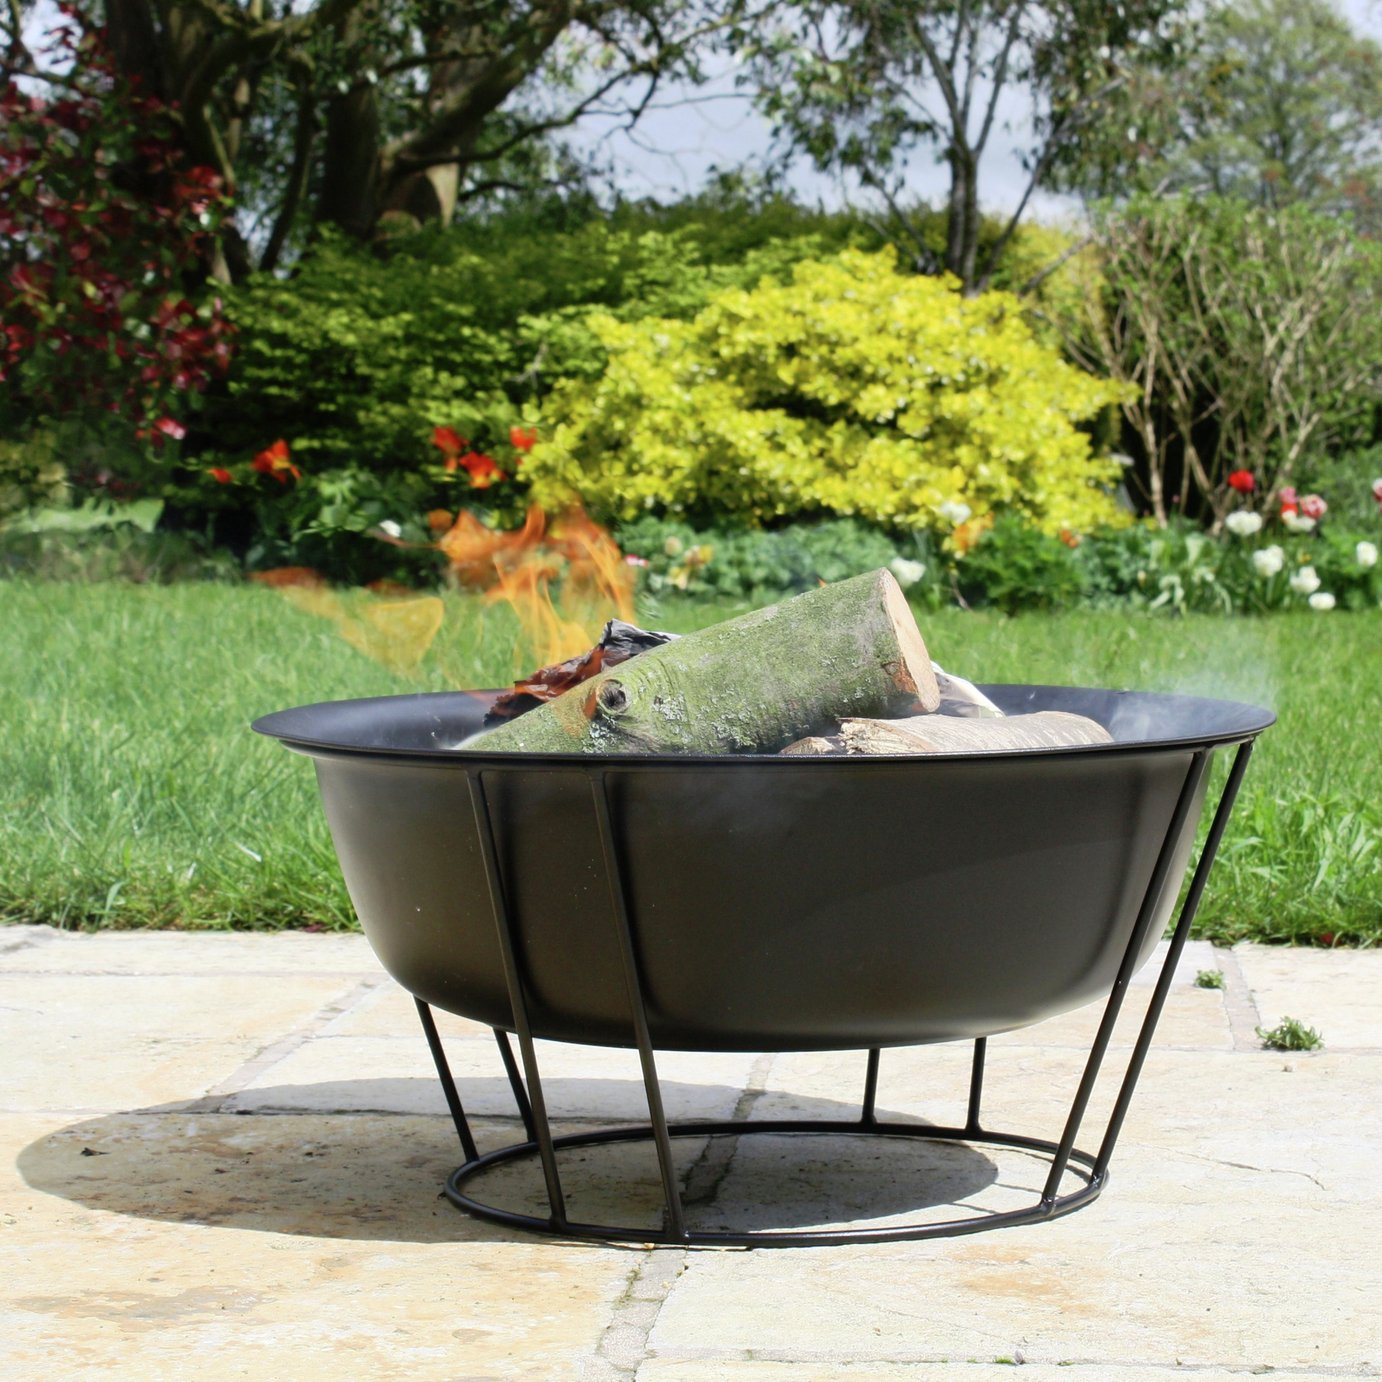 Image of La Hacienda - Steel Firepit